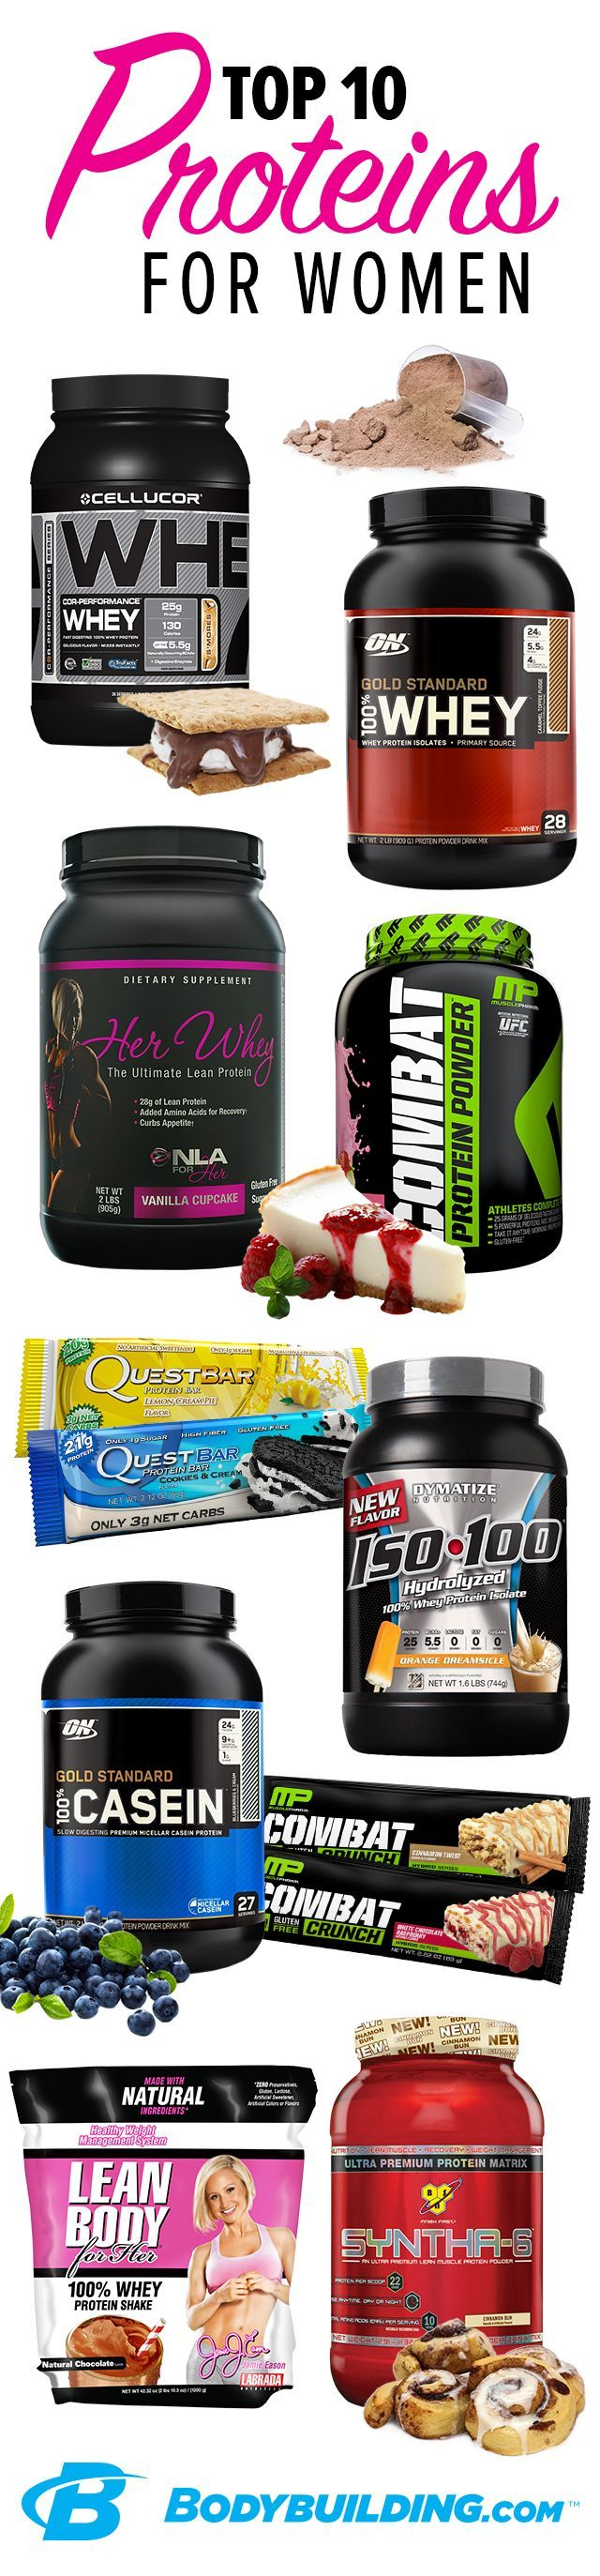 Top 10 Proteins for Women! Think proteins are just for massive muscleheads? Think again. Without it, you can't create strong, firm, muscles for a lean, sculpted look. They also assist with fat loss and workout recovery. No skinny-fat body for you! Bodybuilding.com